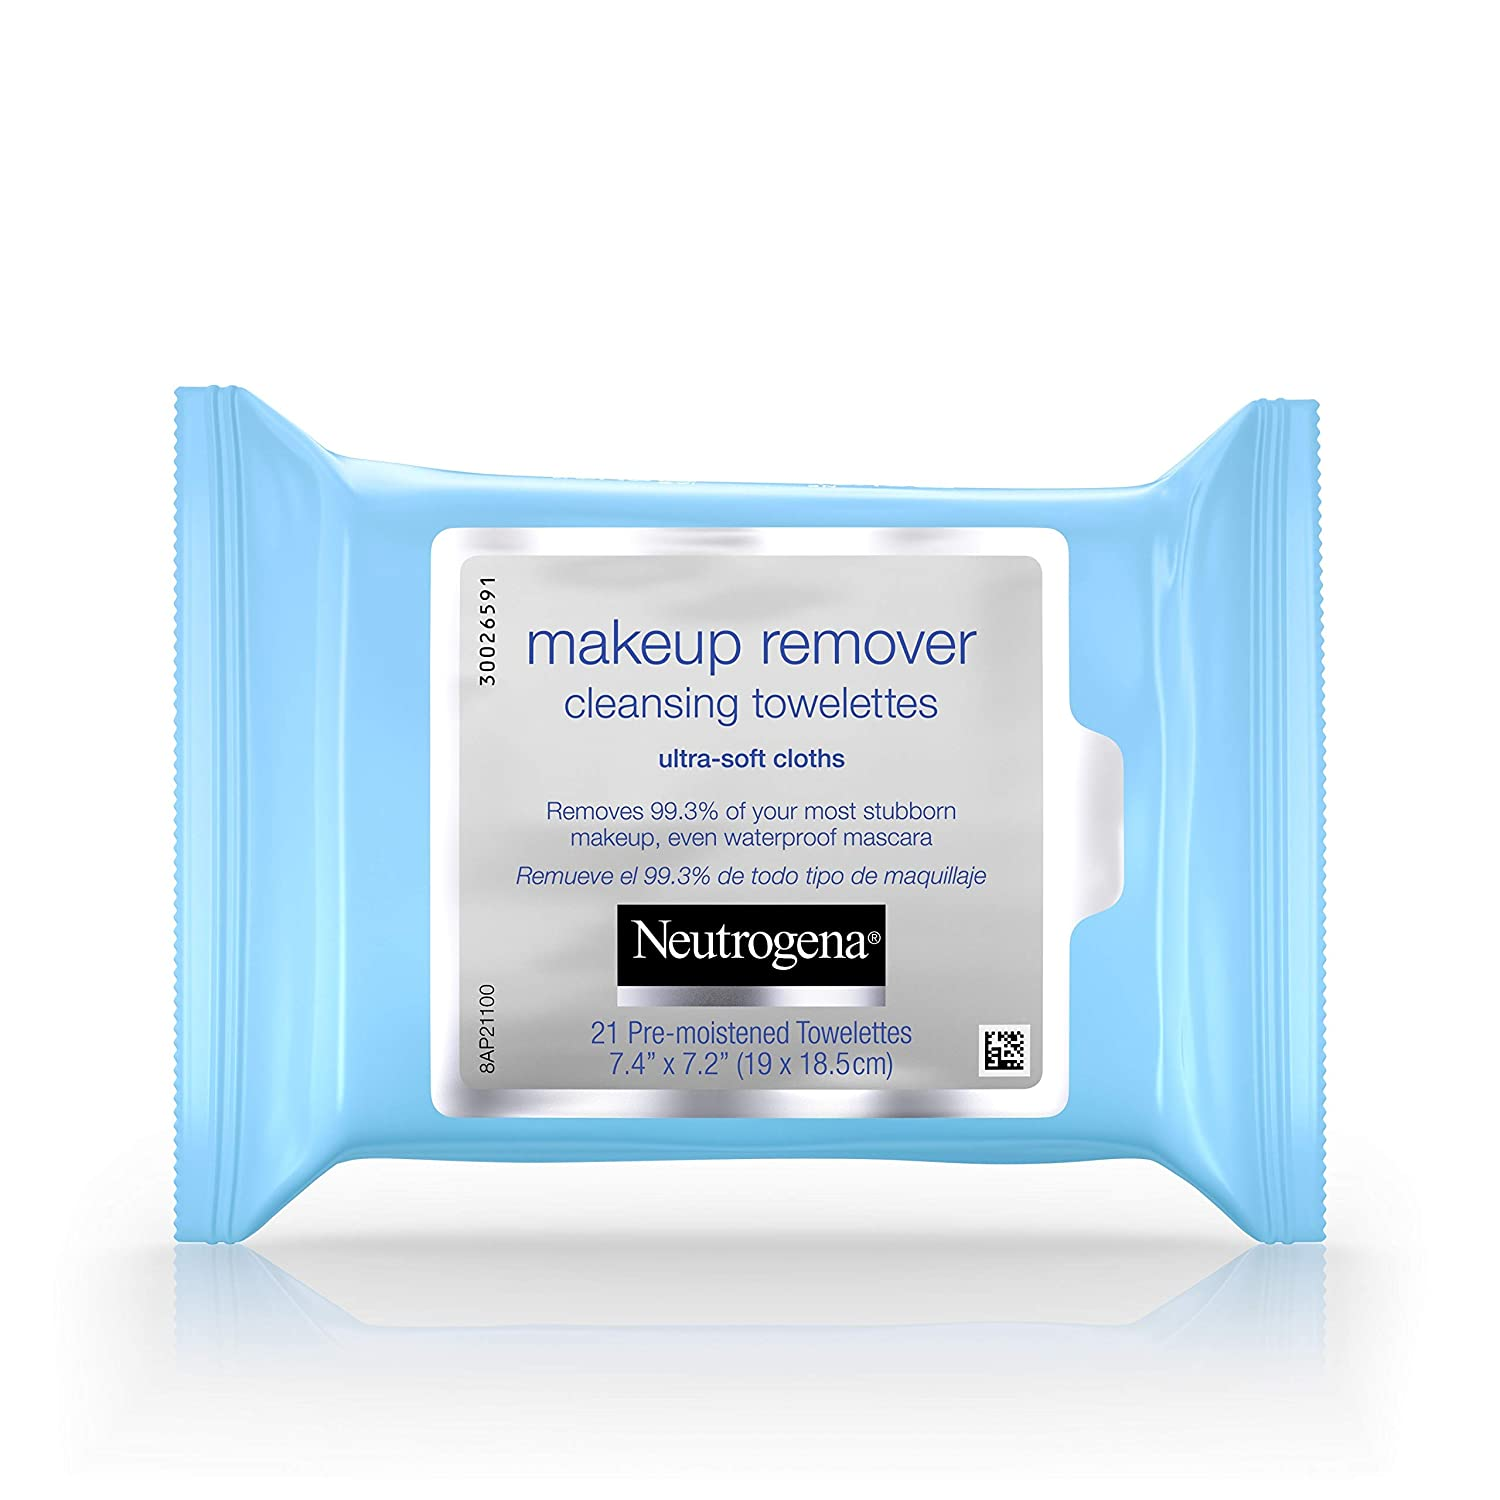 Neutrogena Makeup Remover Towelettes-21 oz